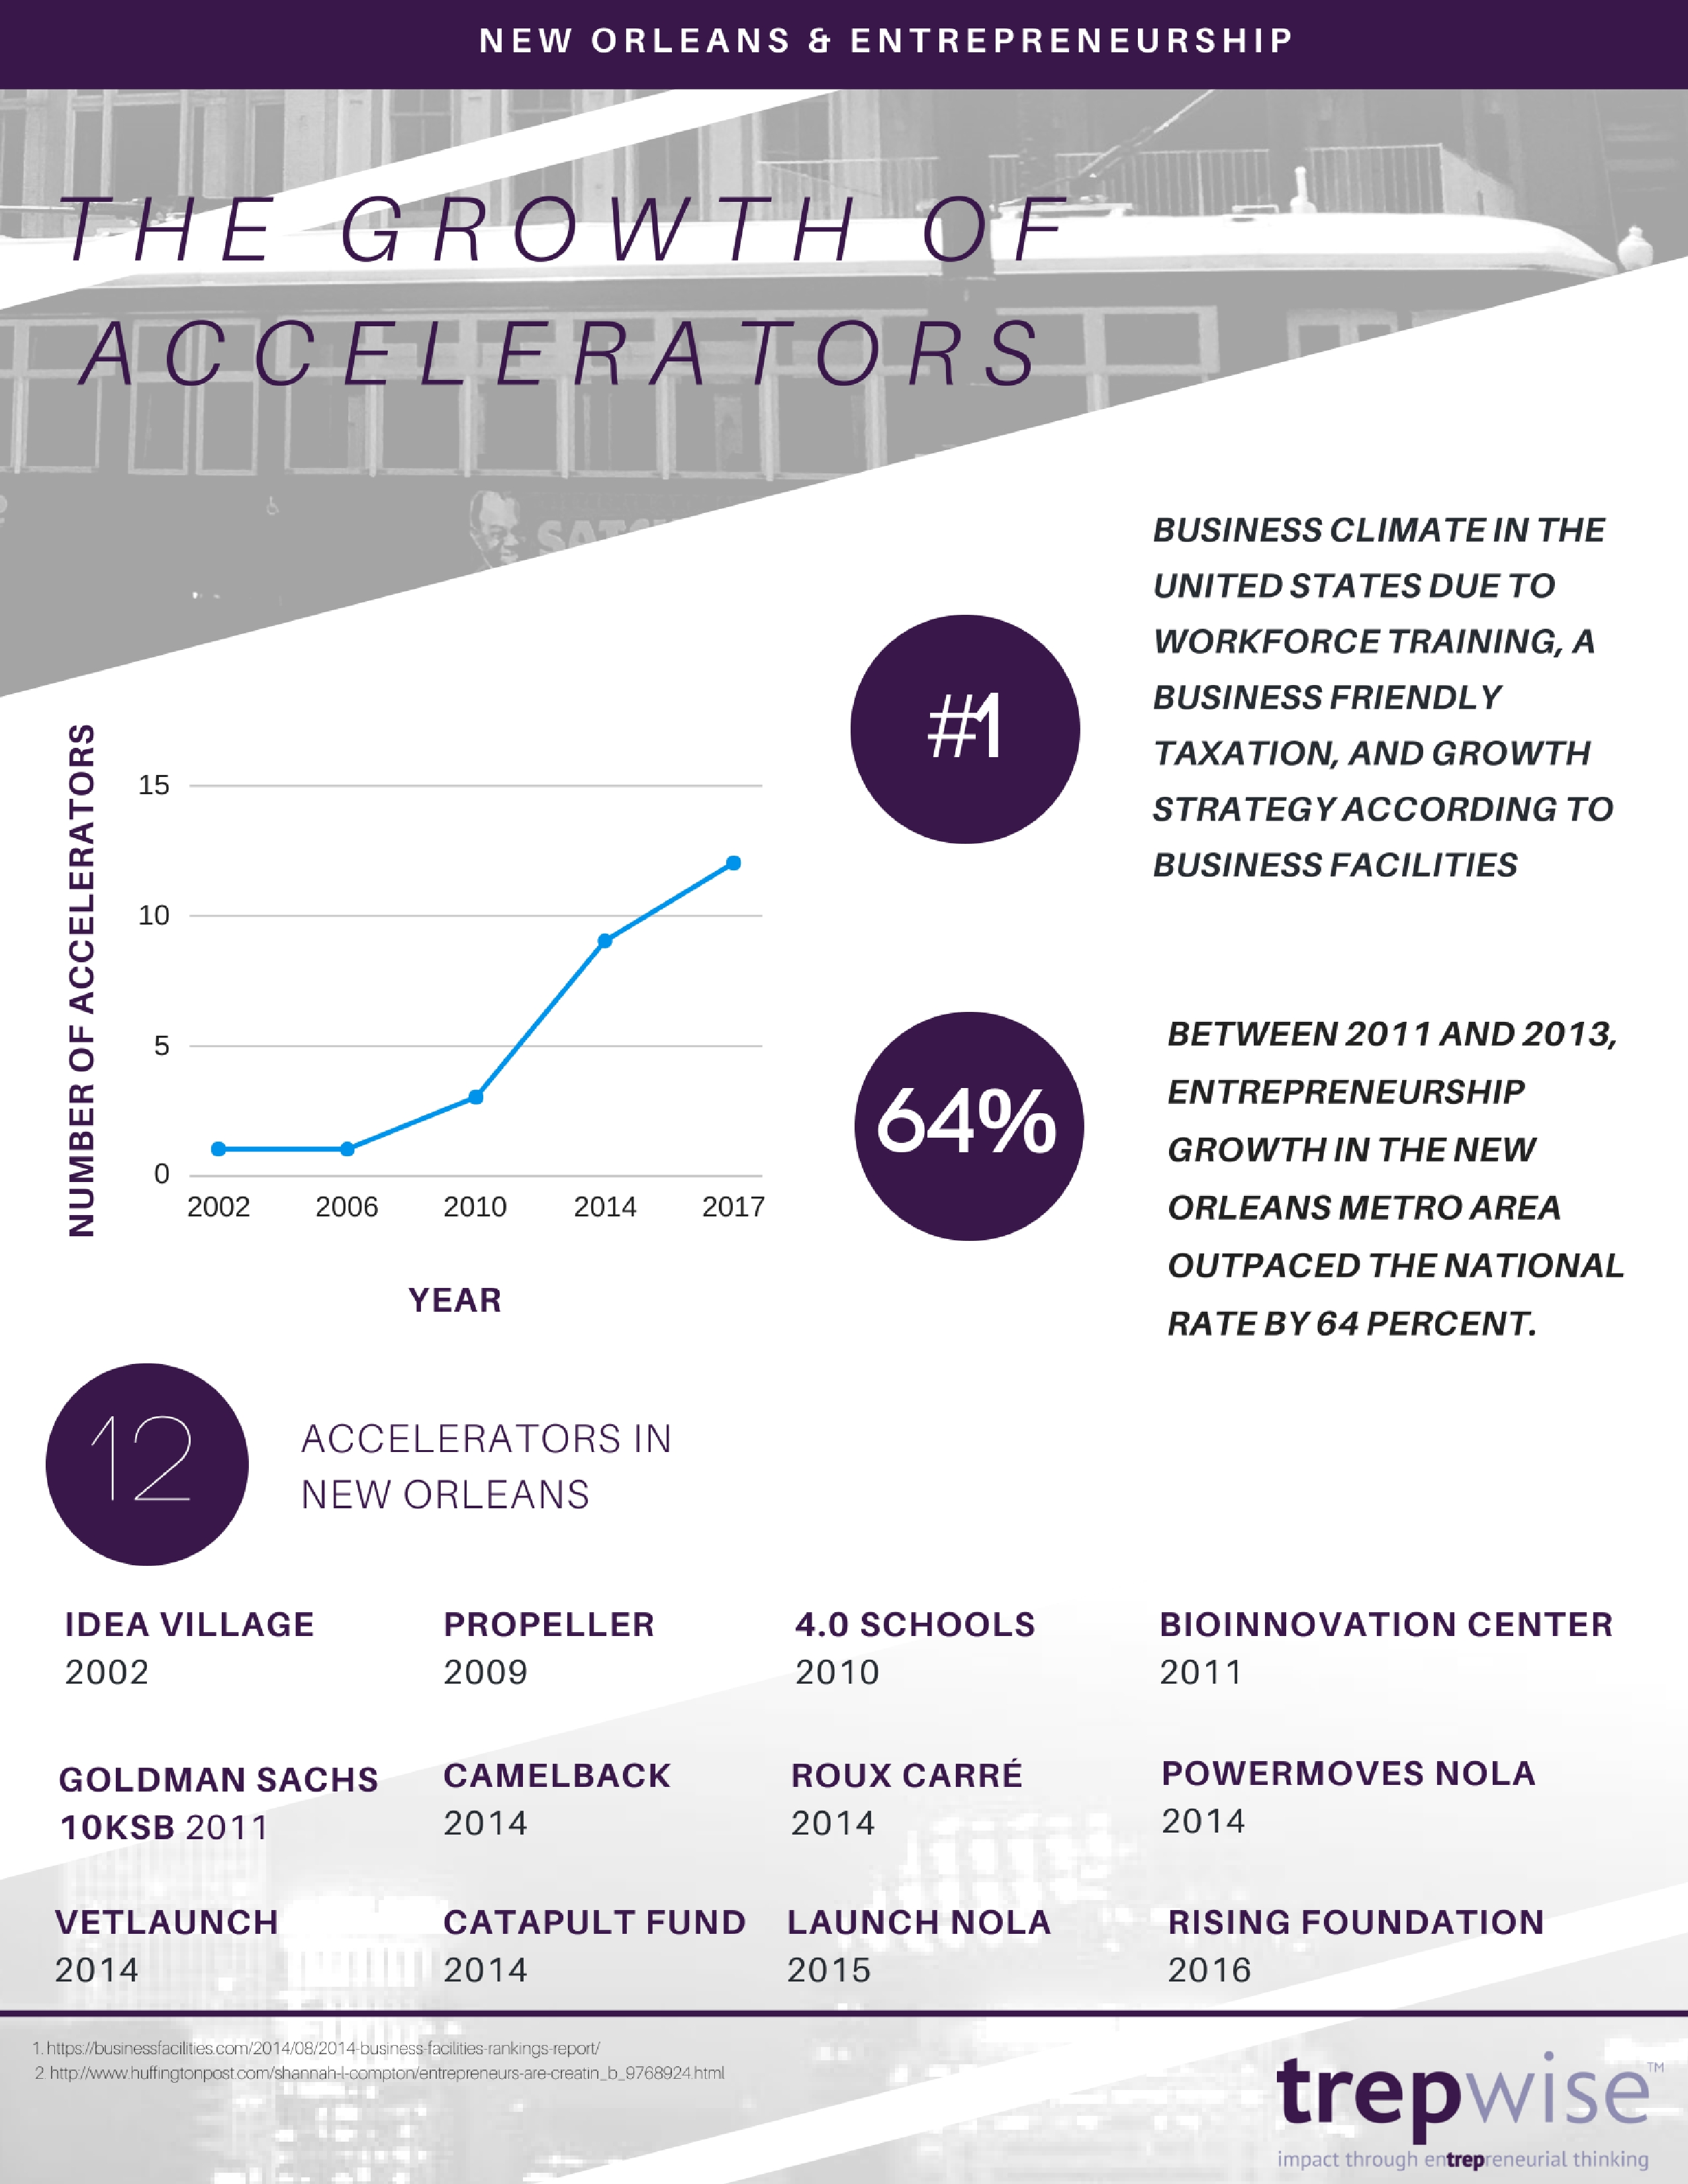 trepwise accelerator growth in New Orleans